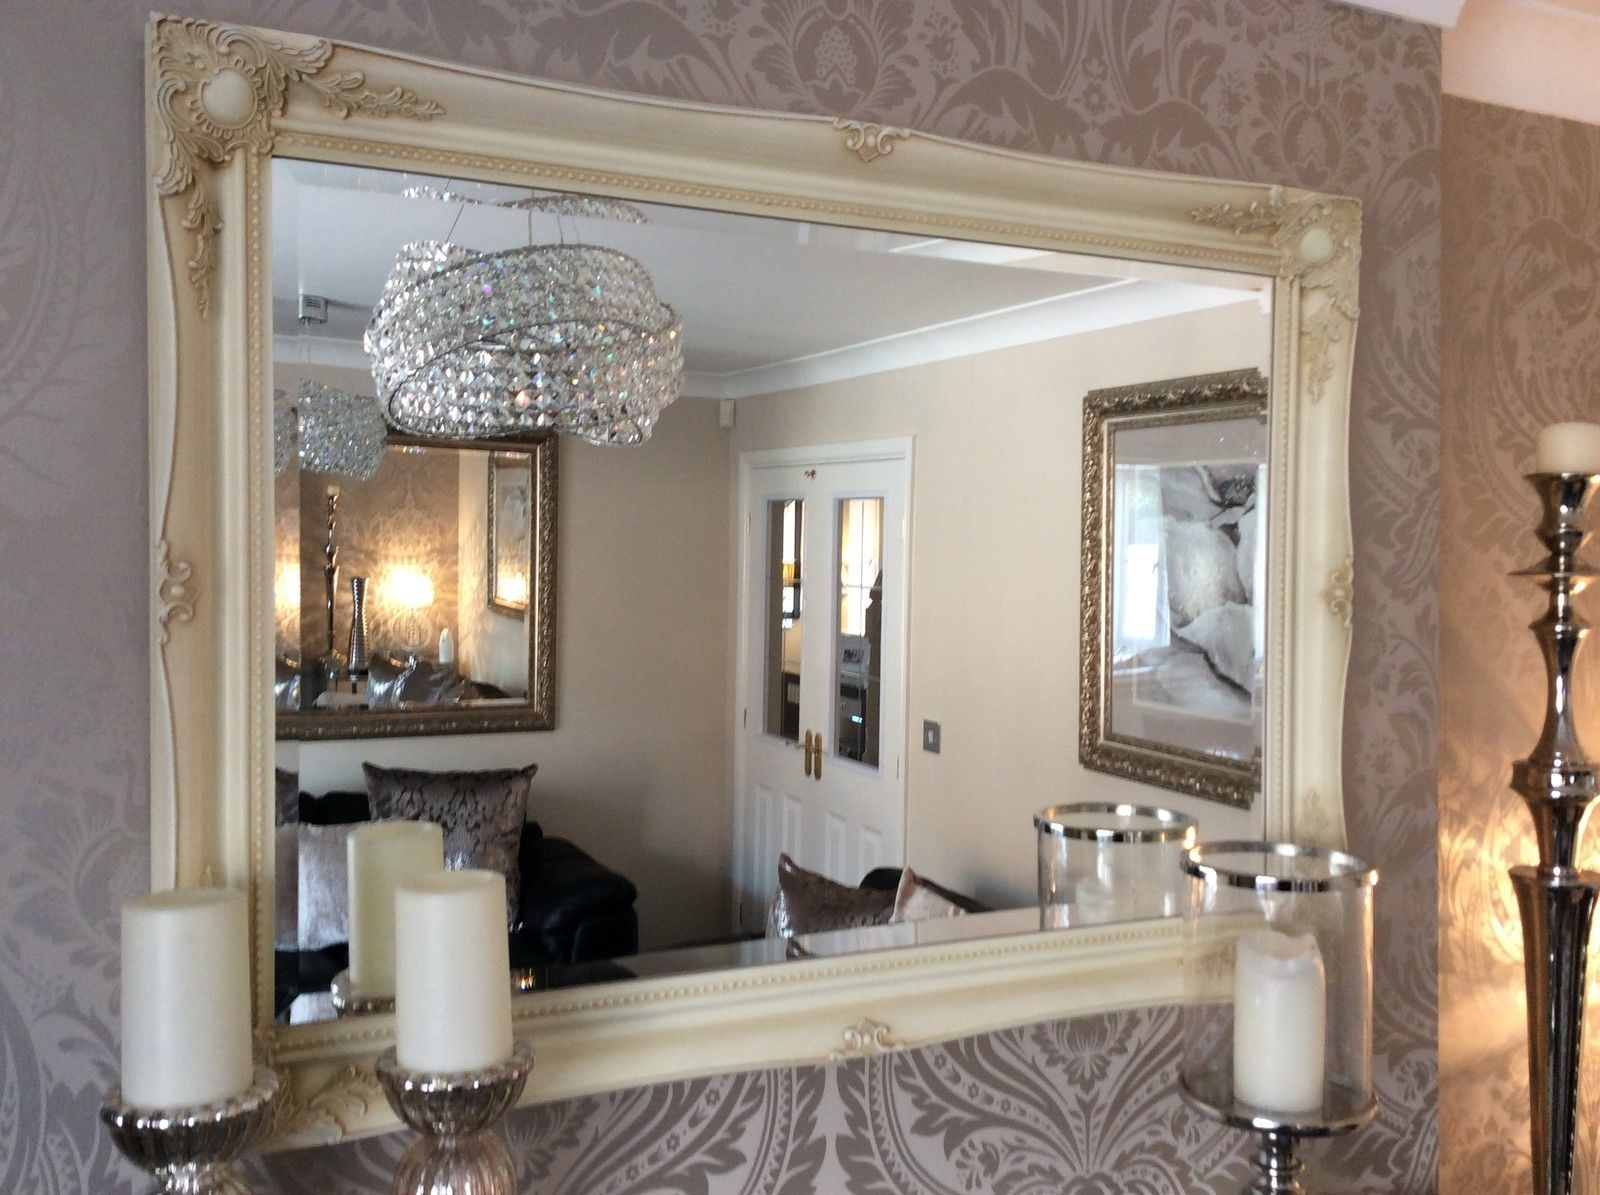 Fabulous Large Cream Decorative Stunning Shab Chic Wall Mirror With Shabby Chic Wall Mirrors (Image 3 of 15)